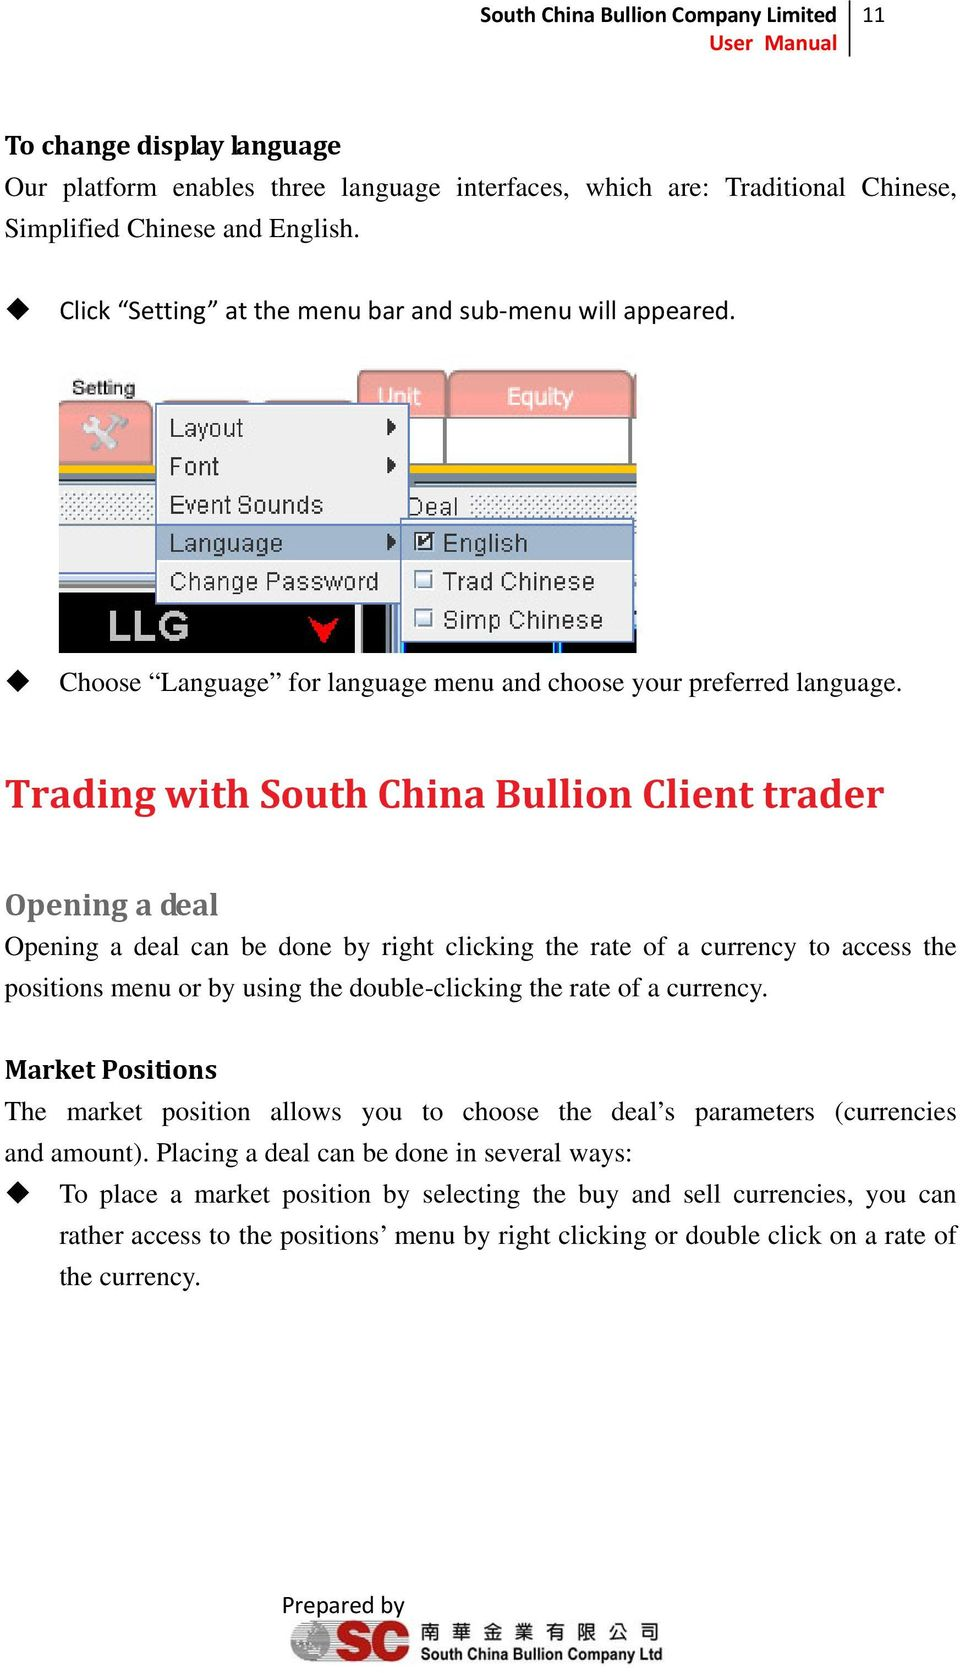 Trading with South China Bullion Client trader Opening a deal Opening a deal can be done by right clicking the rate of a currency to access the positions menu or by using the double-clicking the rate